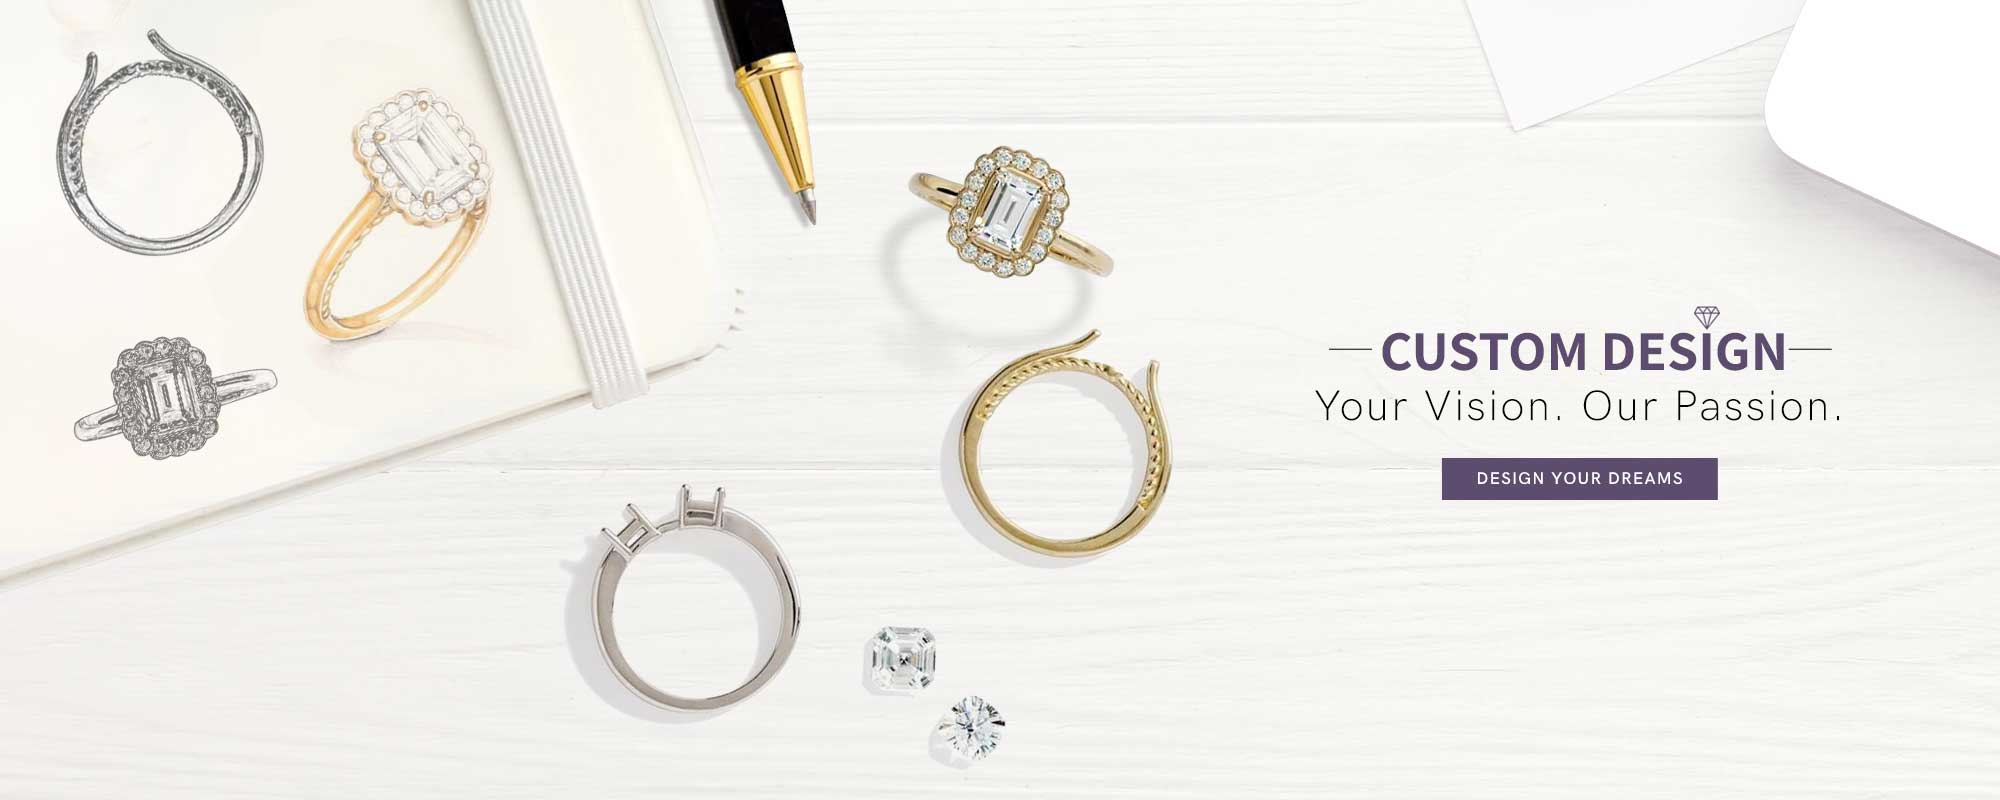 Custom Design Your Jewelry At Pearson's Jewelers